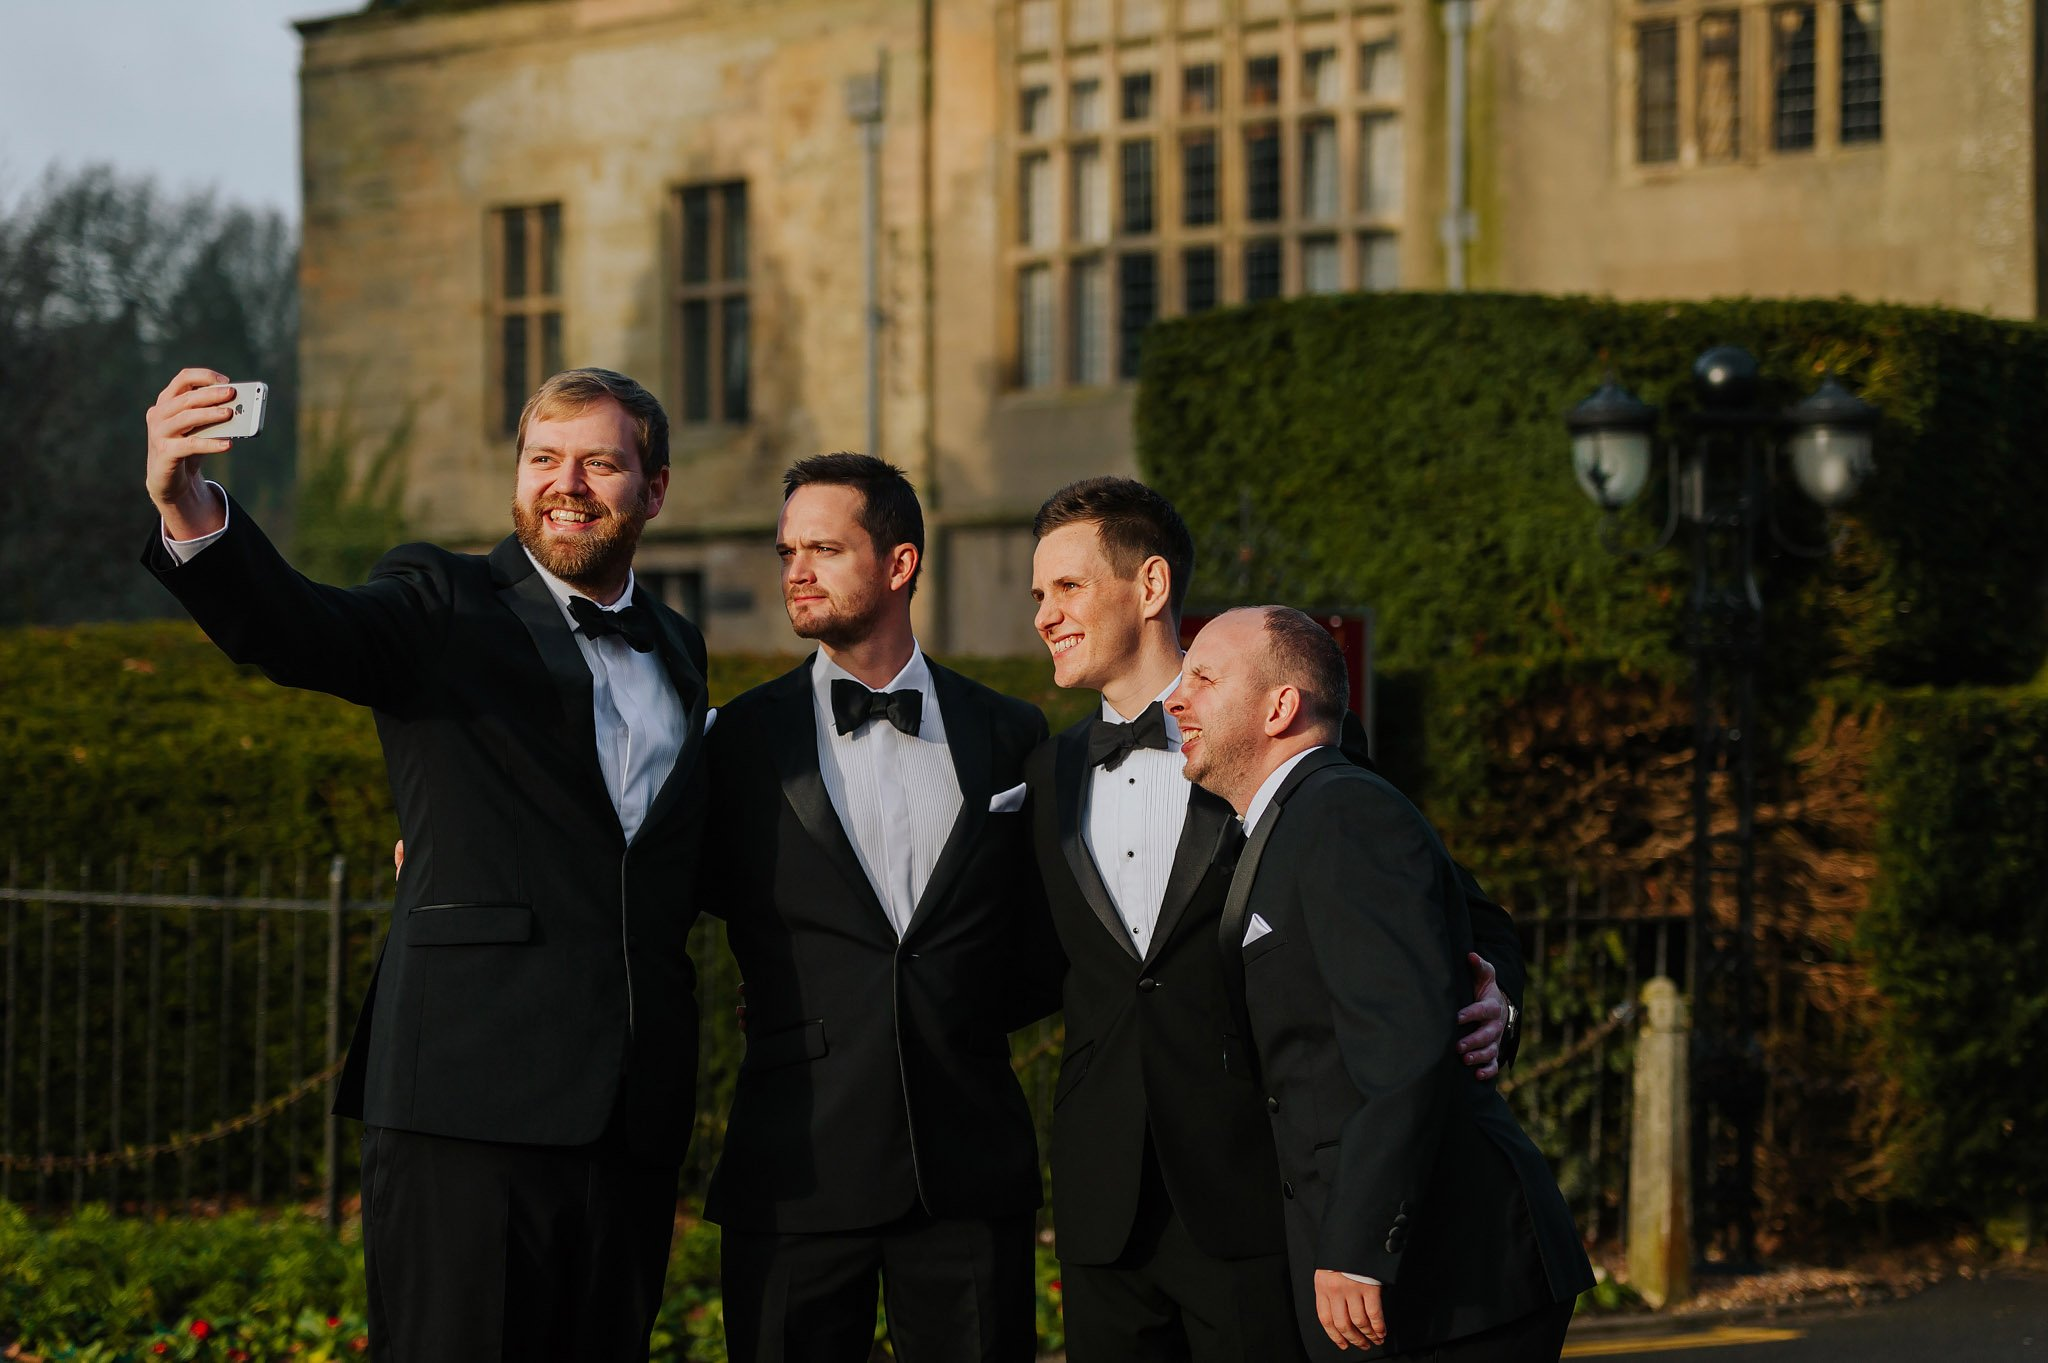 coombe abbey wedding coventry 29 - Coombe Abbey wedding in Coventry, Warwickshire - Sam + Matt